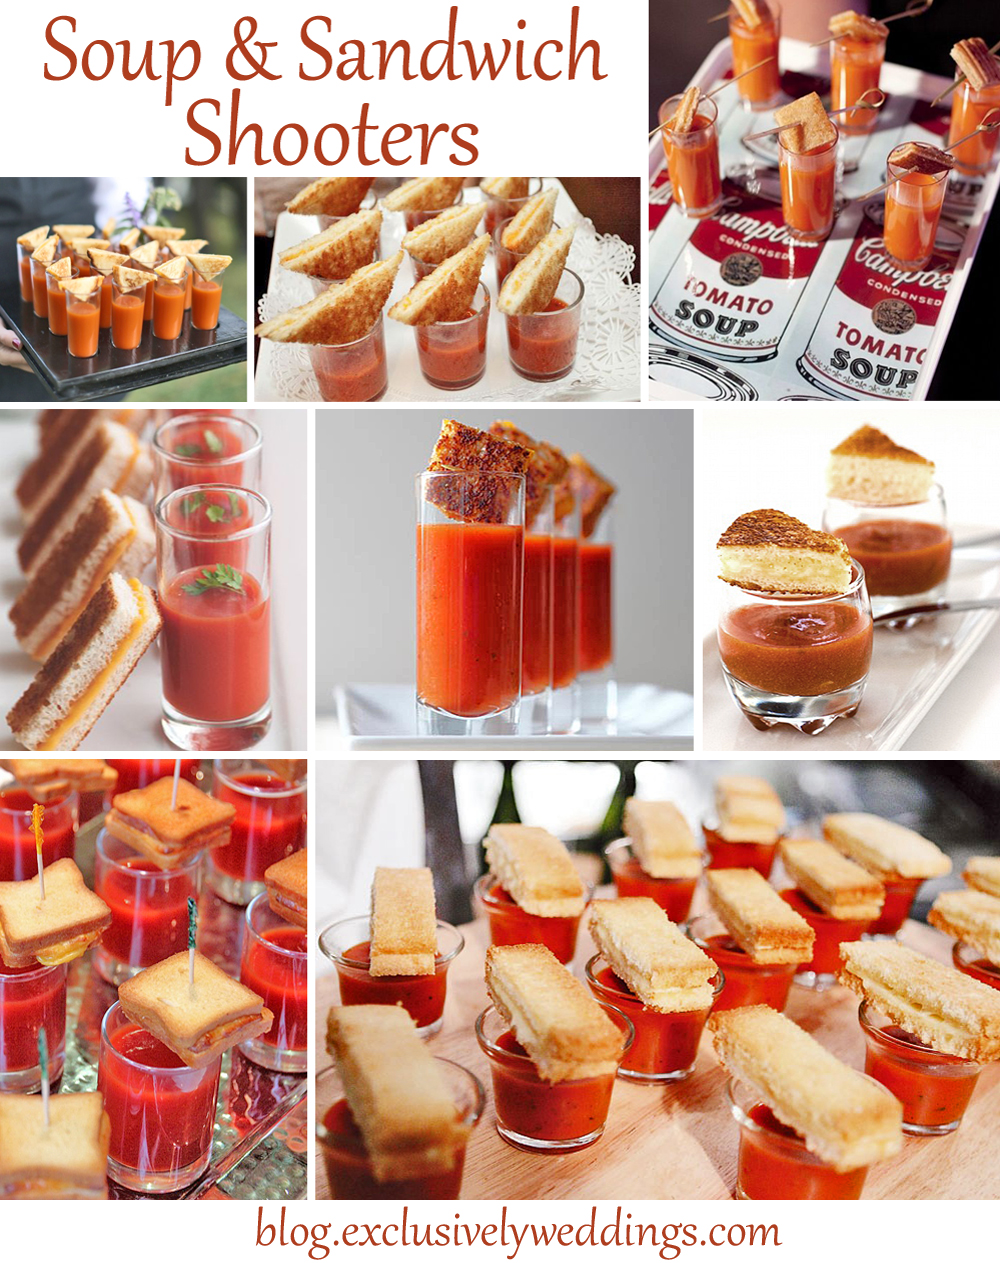 Impress Your Wedding Reception Guests ... Serve the Meal in Shooters ...